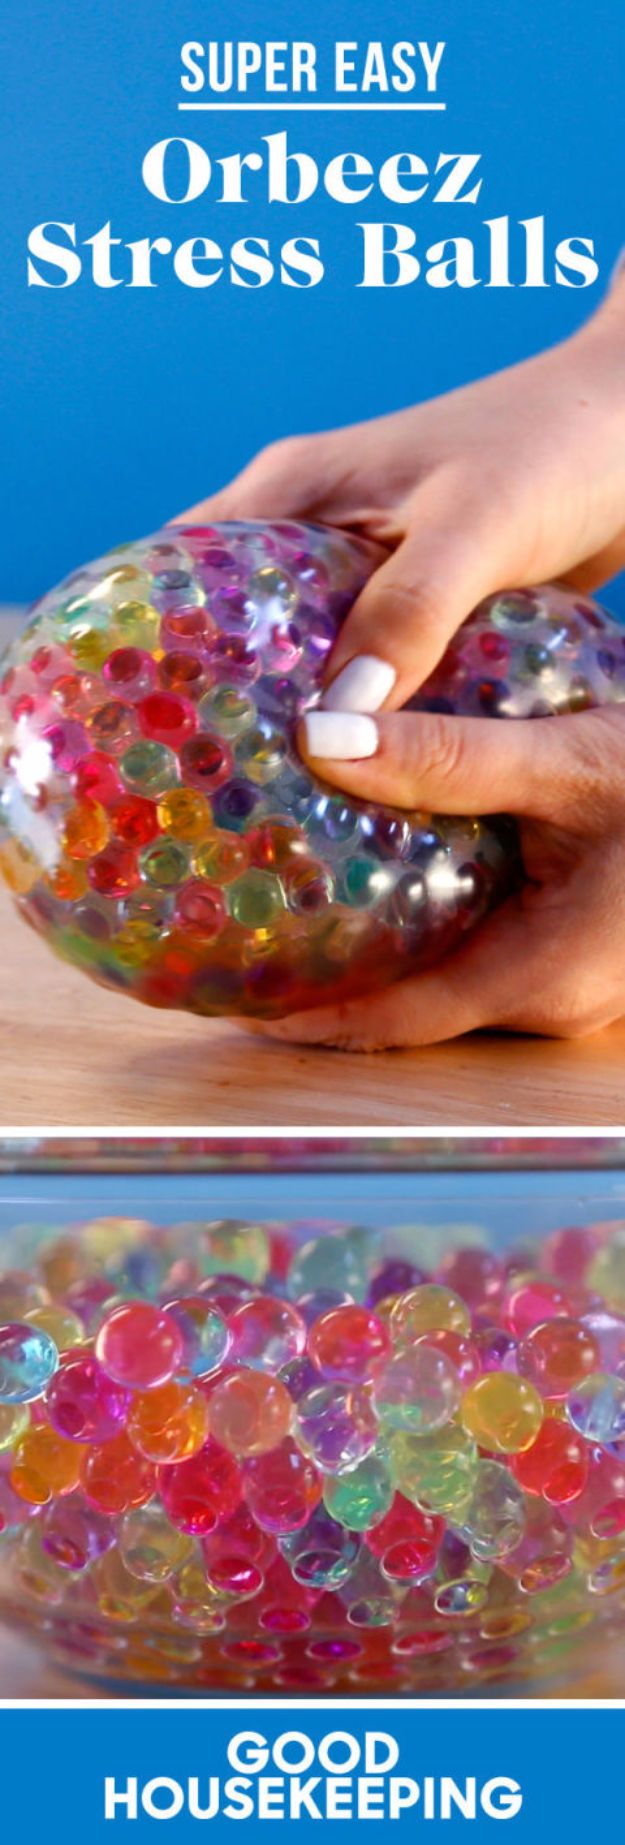 Crafts for Teens to Make and Sell - DIY Orbeez Stress Ball - Cheap and Easy DIY Ideas To Make For Extra Money - Best Things to Sell On Etsy, Dollar Store Craft Ideas, Quick Projects for Teenagers To Make Spending Cash - DIY Gifts, Wall Art, School Supplies, Room Decor, Jewelry, Fashion, Hair Accessories, Bracelets, Magnets http://diyprojectsforteens.com/crafts-to-sell-teens